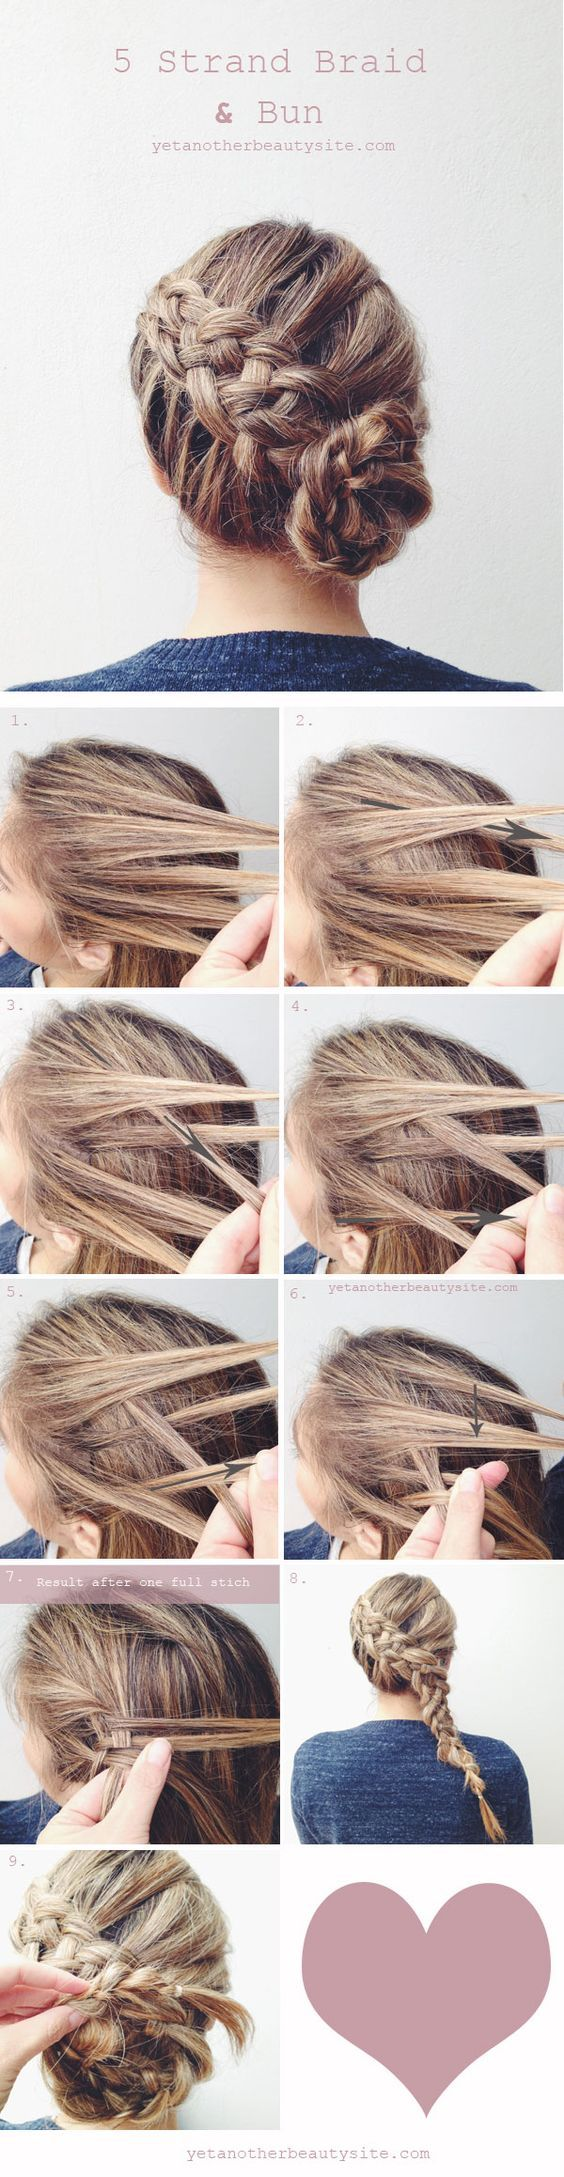 Cute And Easy First Date Hairstyle Ideas - Page 2 of 4 - Trend To Wear